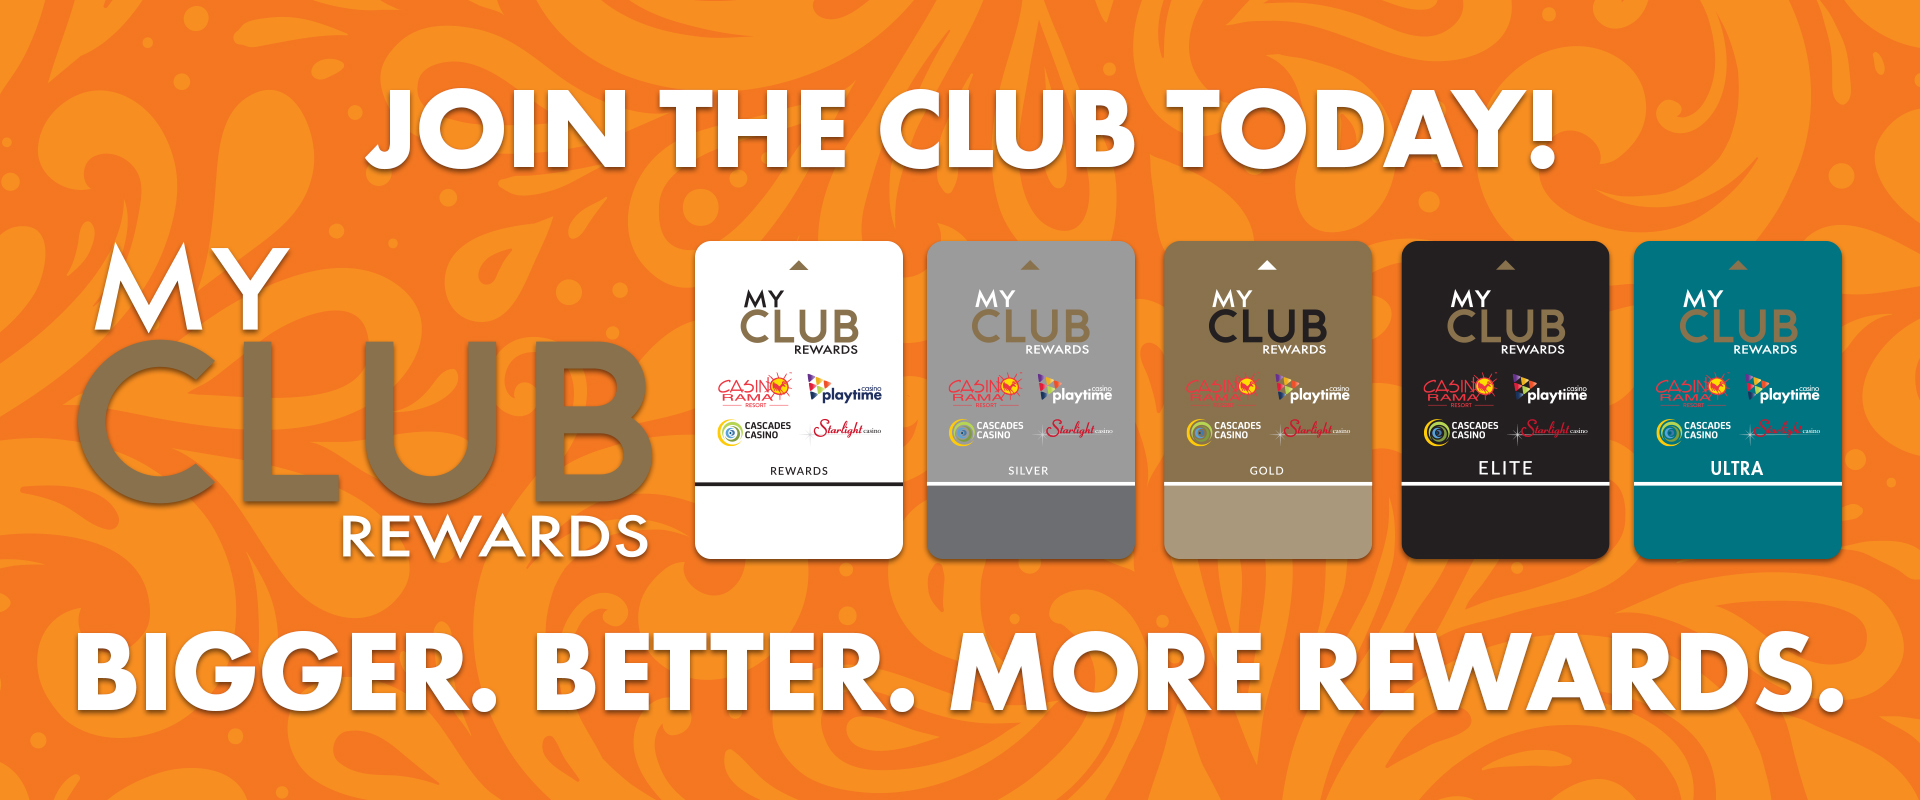 Join My Club Rewards!